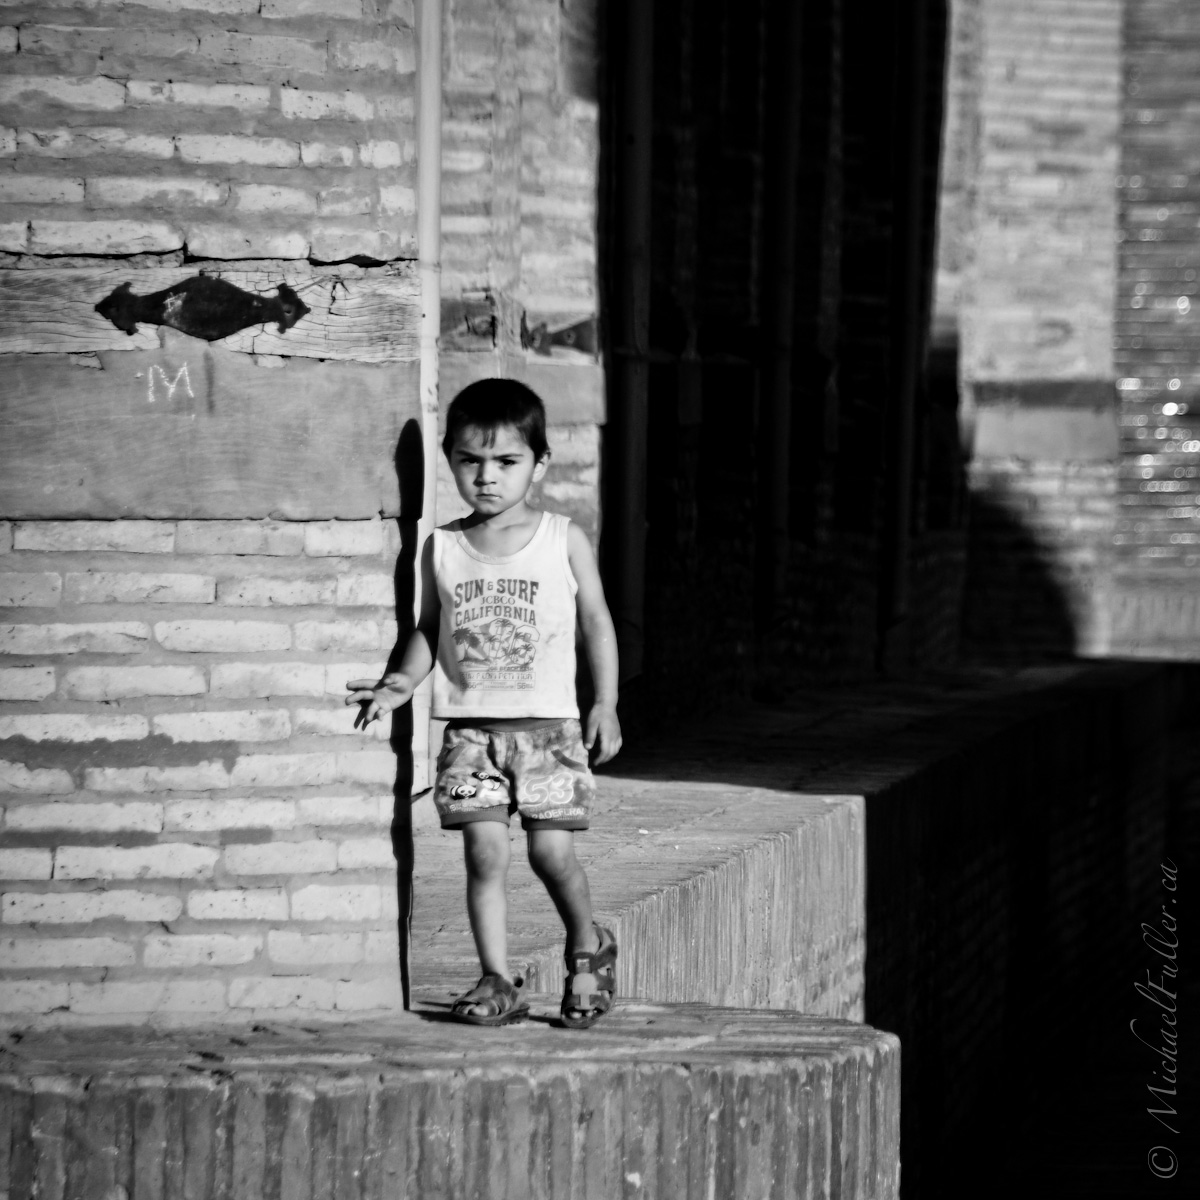 In the empty early morning streets, a child strolls aimlessly and unsupervised.